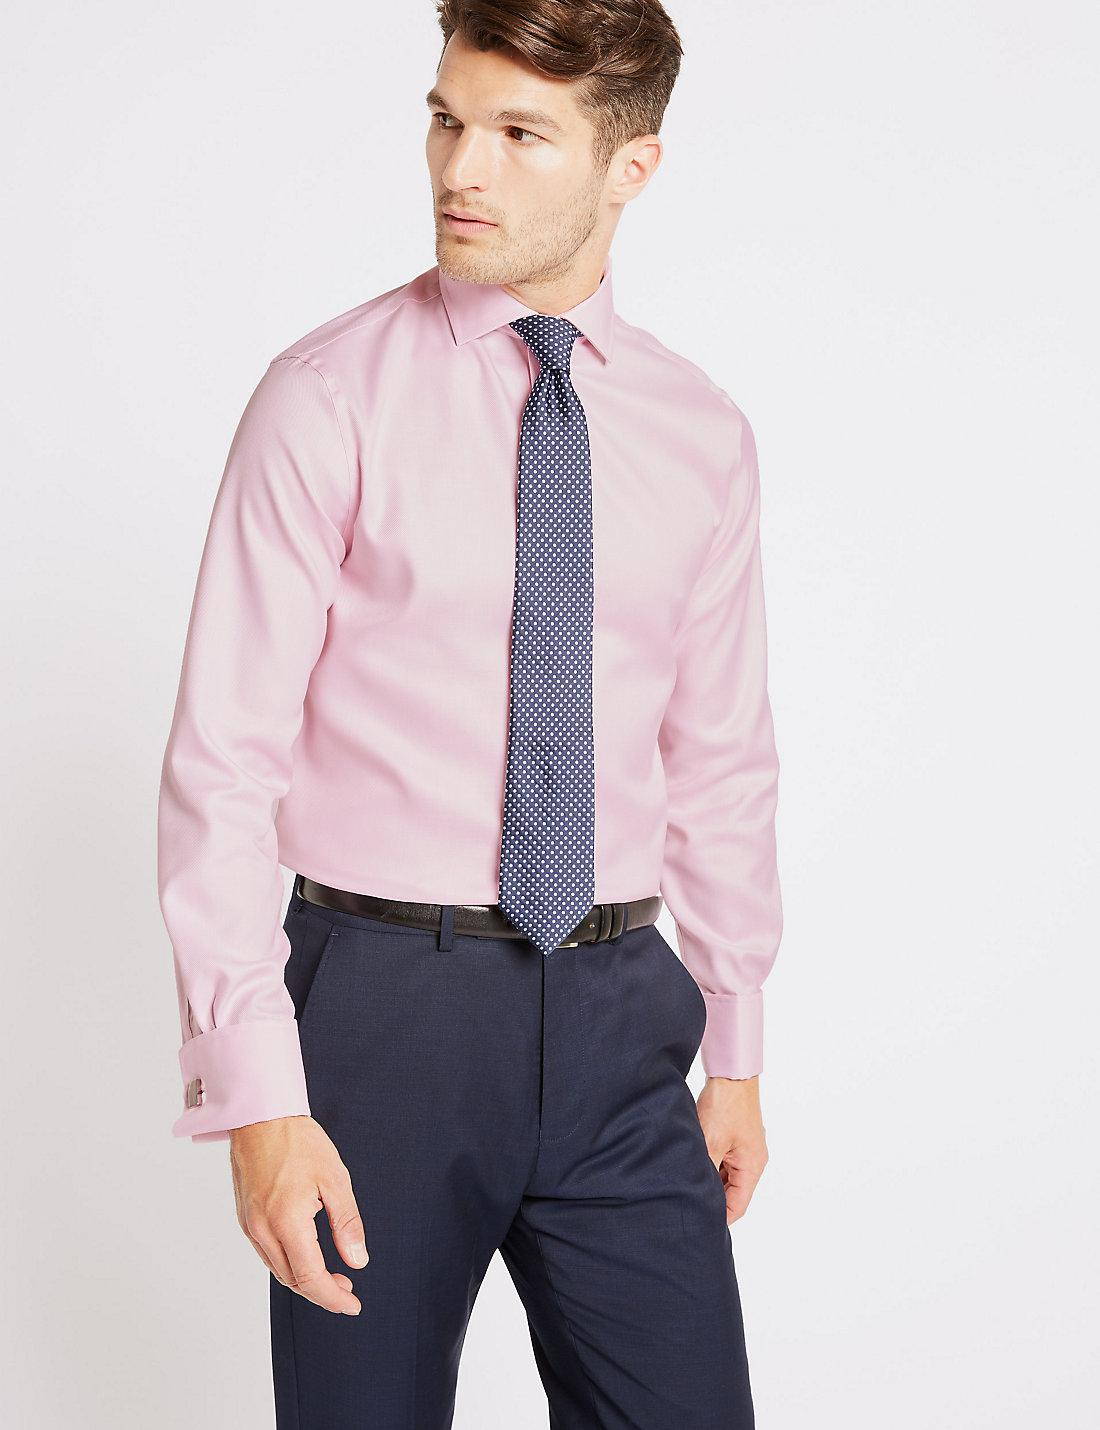 Lyst Marks Spencer Pure Cotton Twill Slim Fit Shirt In Pink For Men